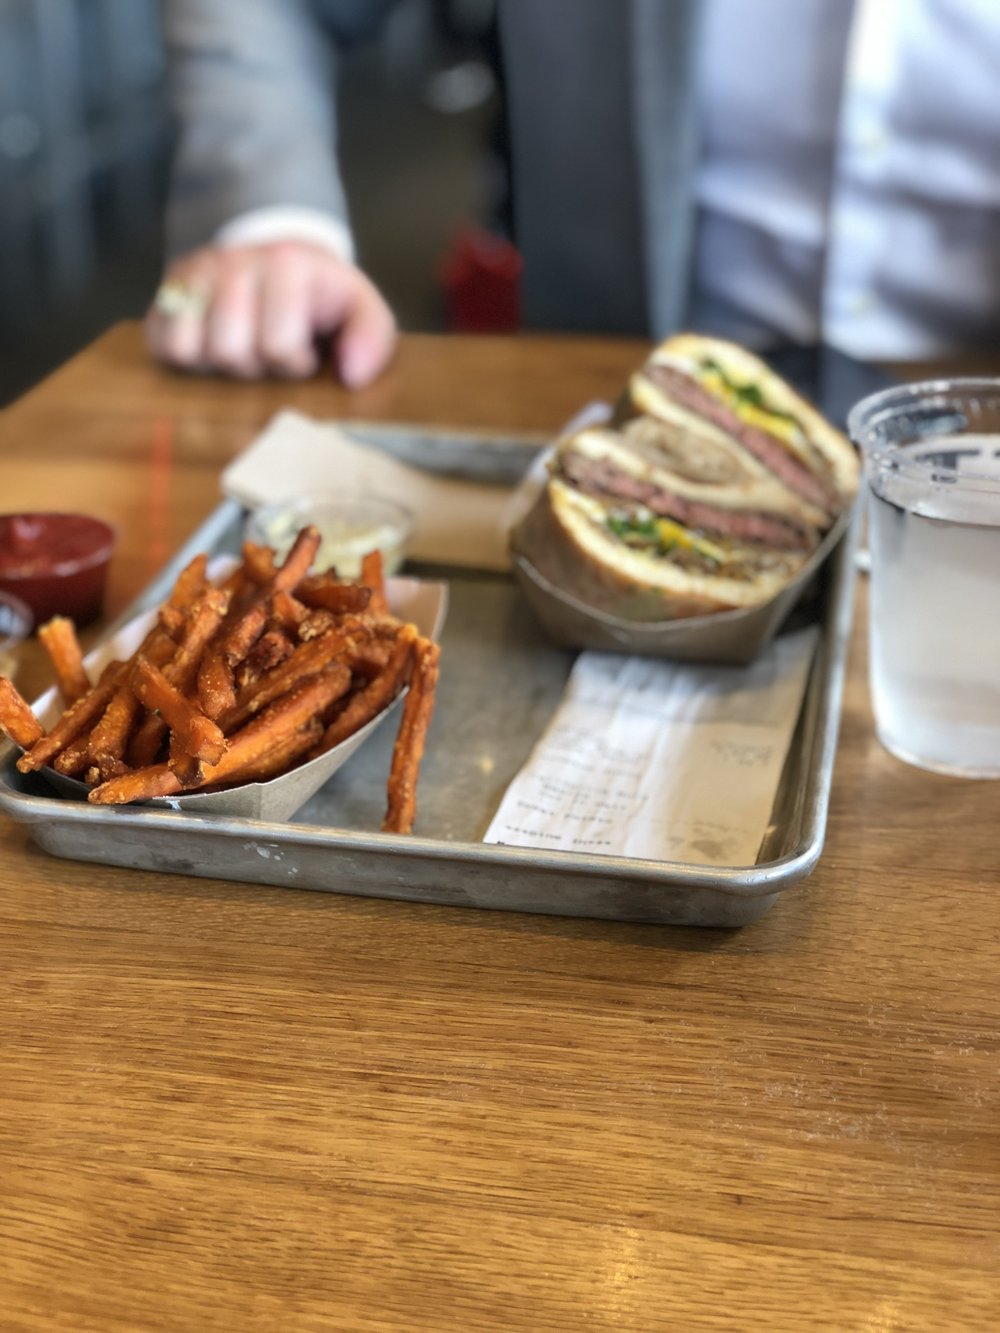 where to eat and drink in san francisco, places to eat lunch in san fran, where to get coffee in san francisco, where to eat dinner in sf, san francisco travel guide, gott's roadside, sweet potato fries